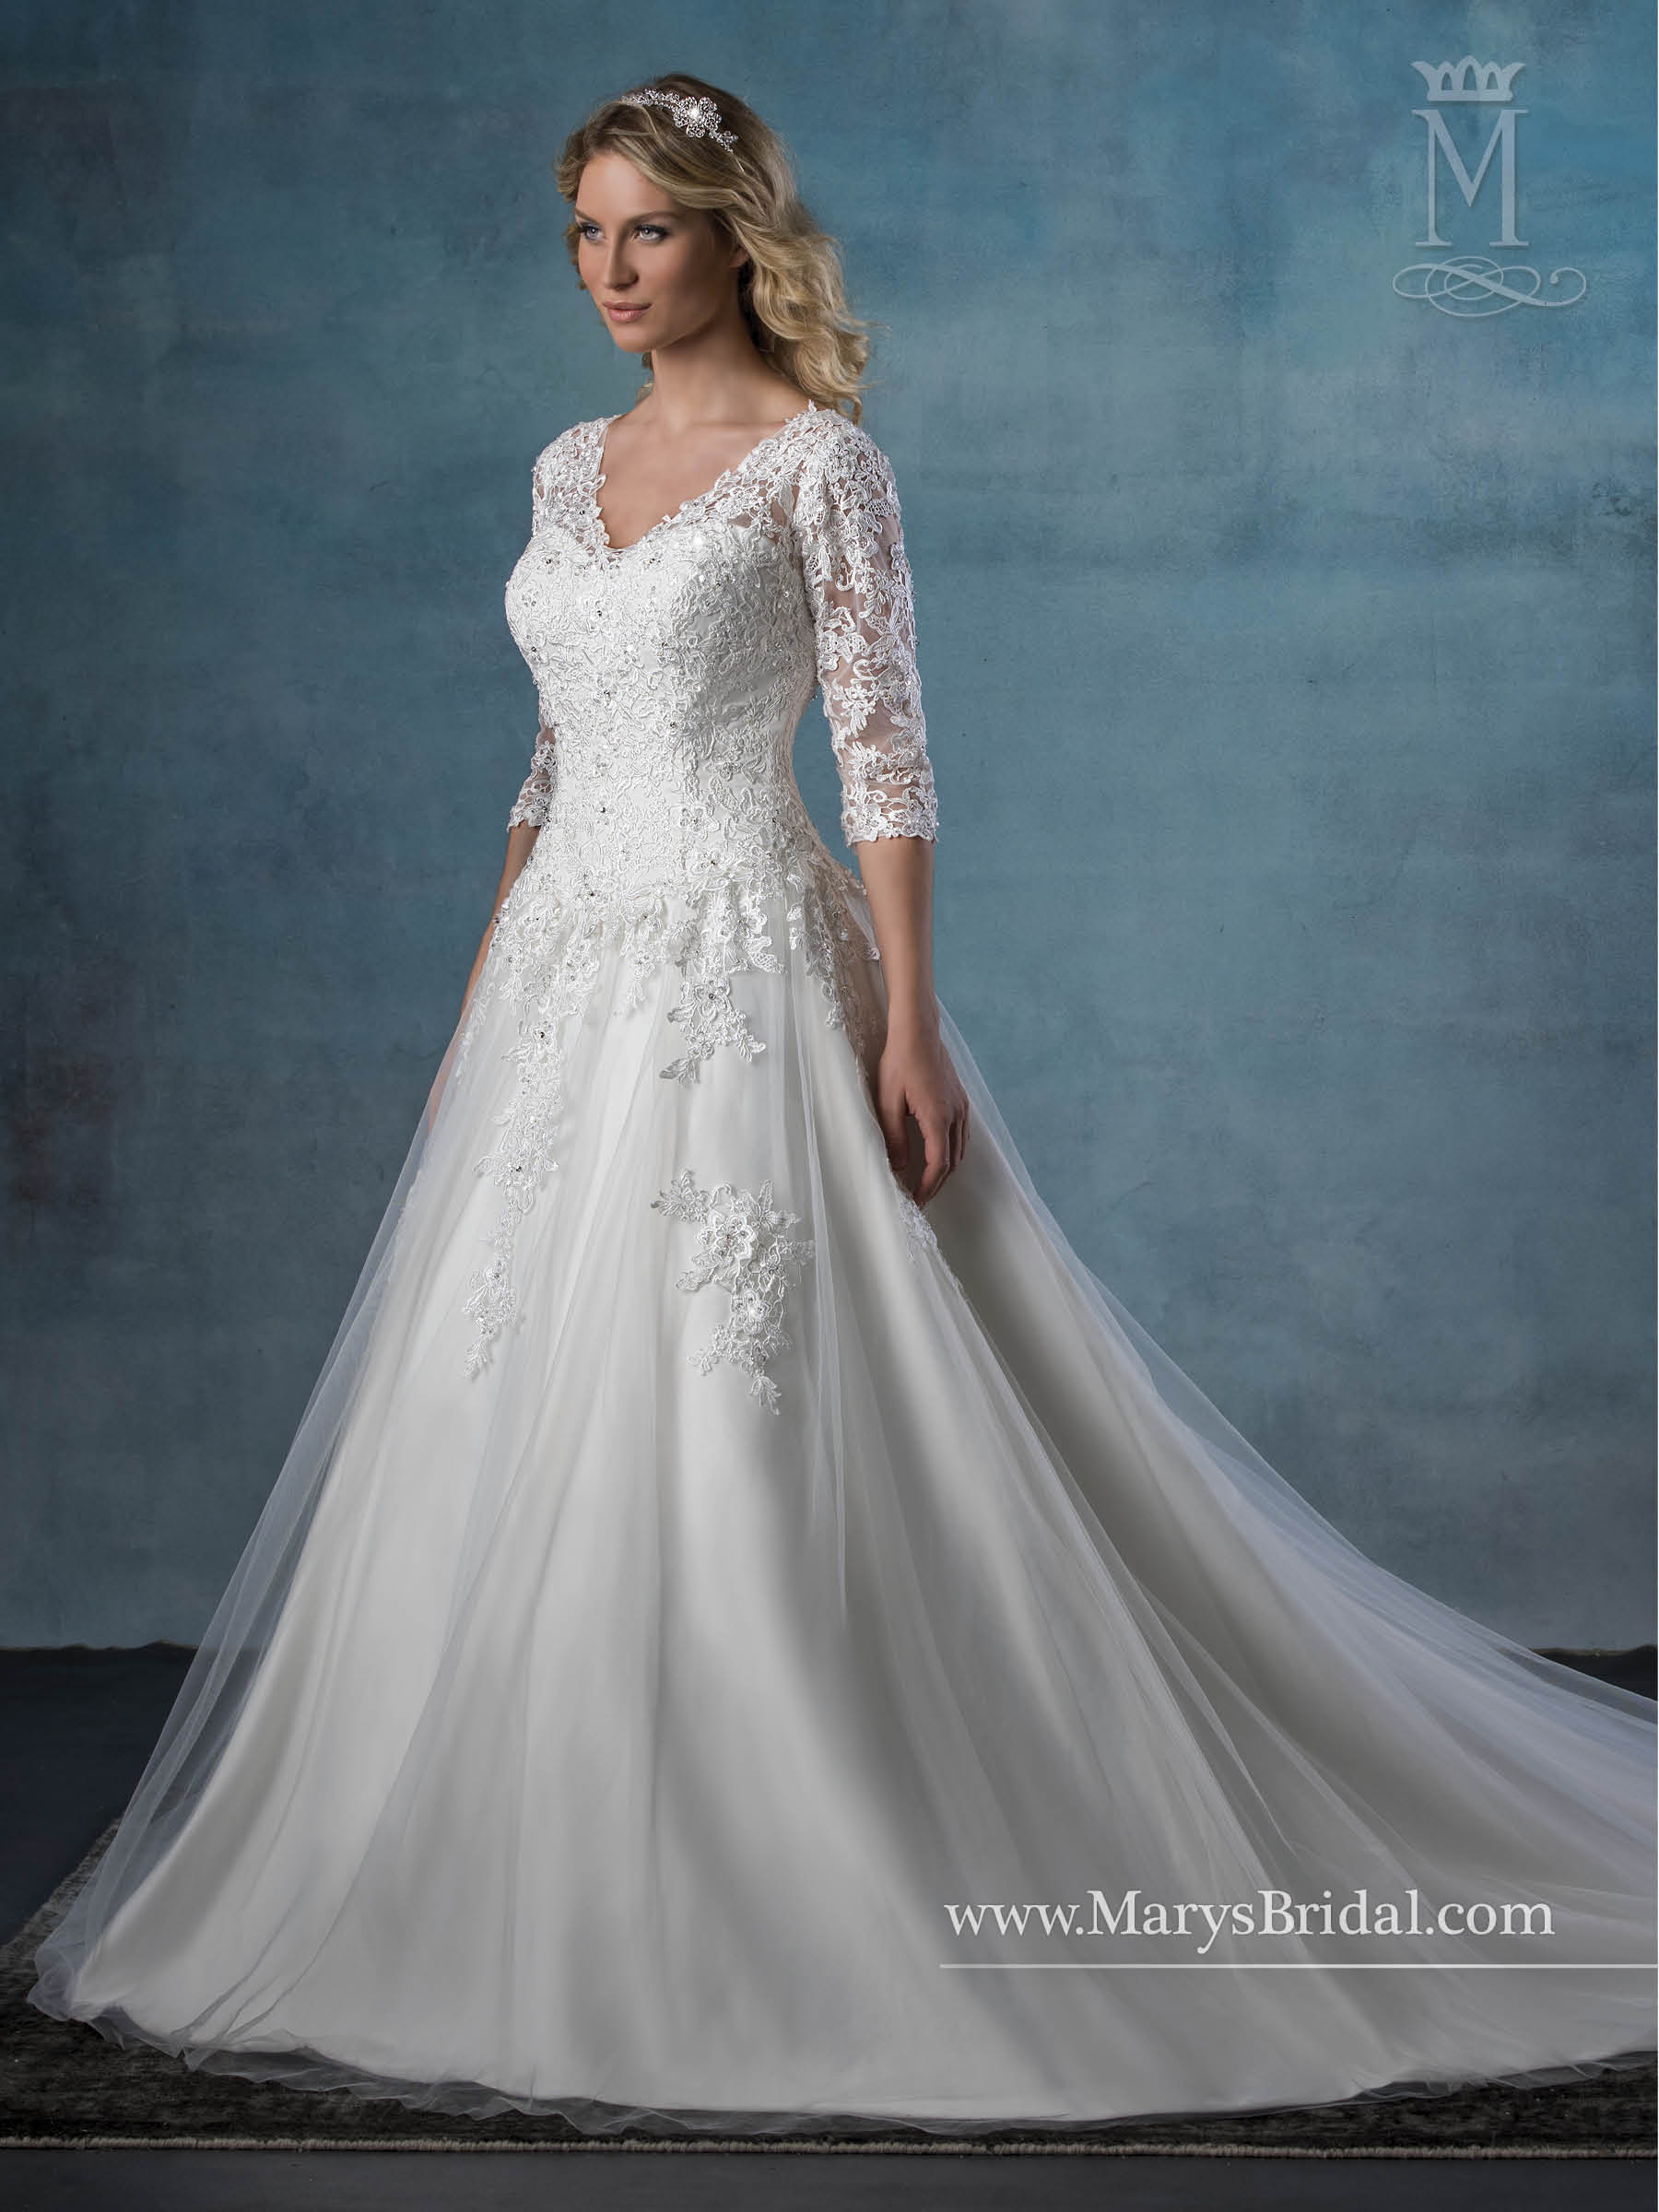 Bridal Wedding Dresses | Style - 6520 in Ivory or White Color